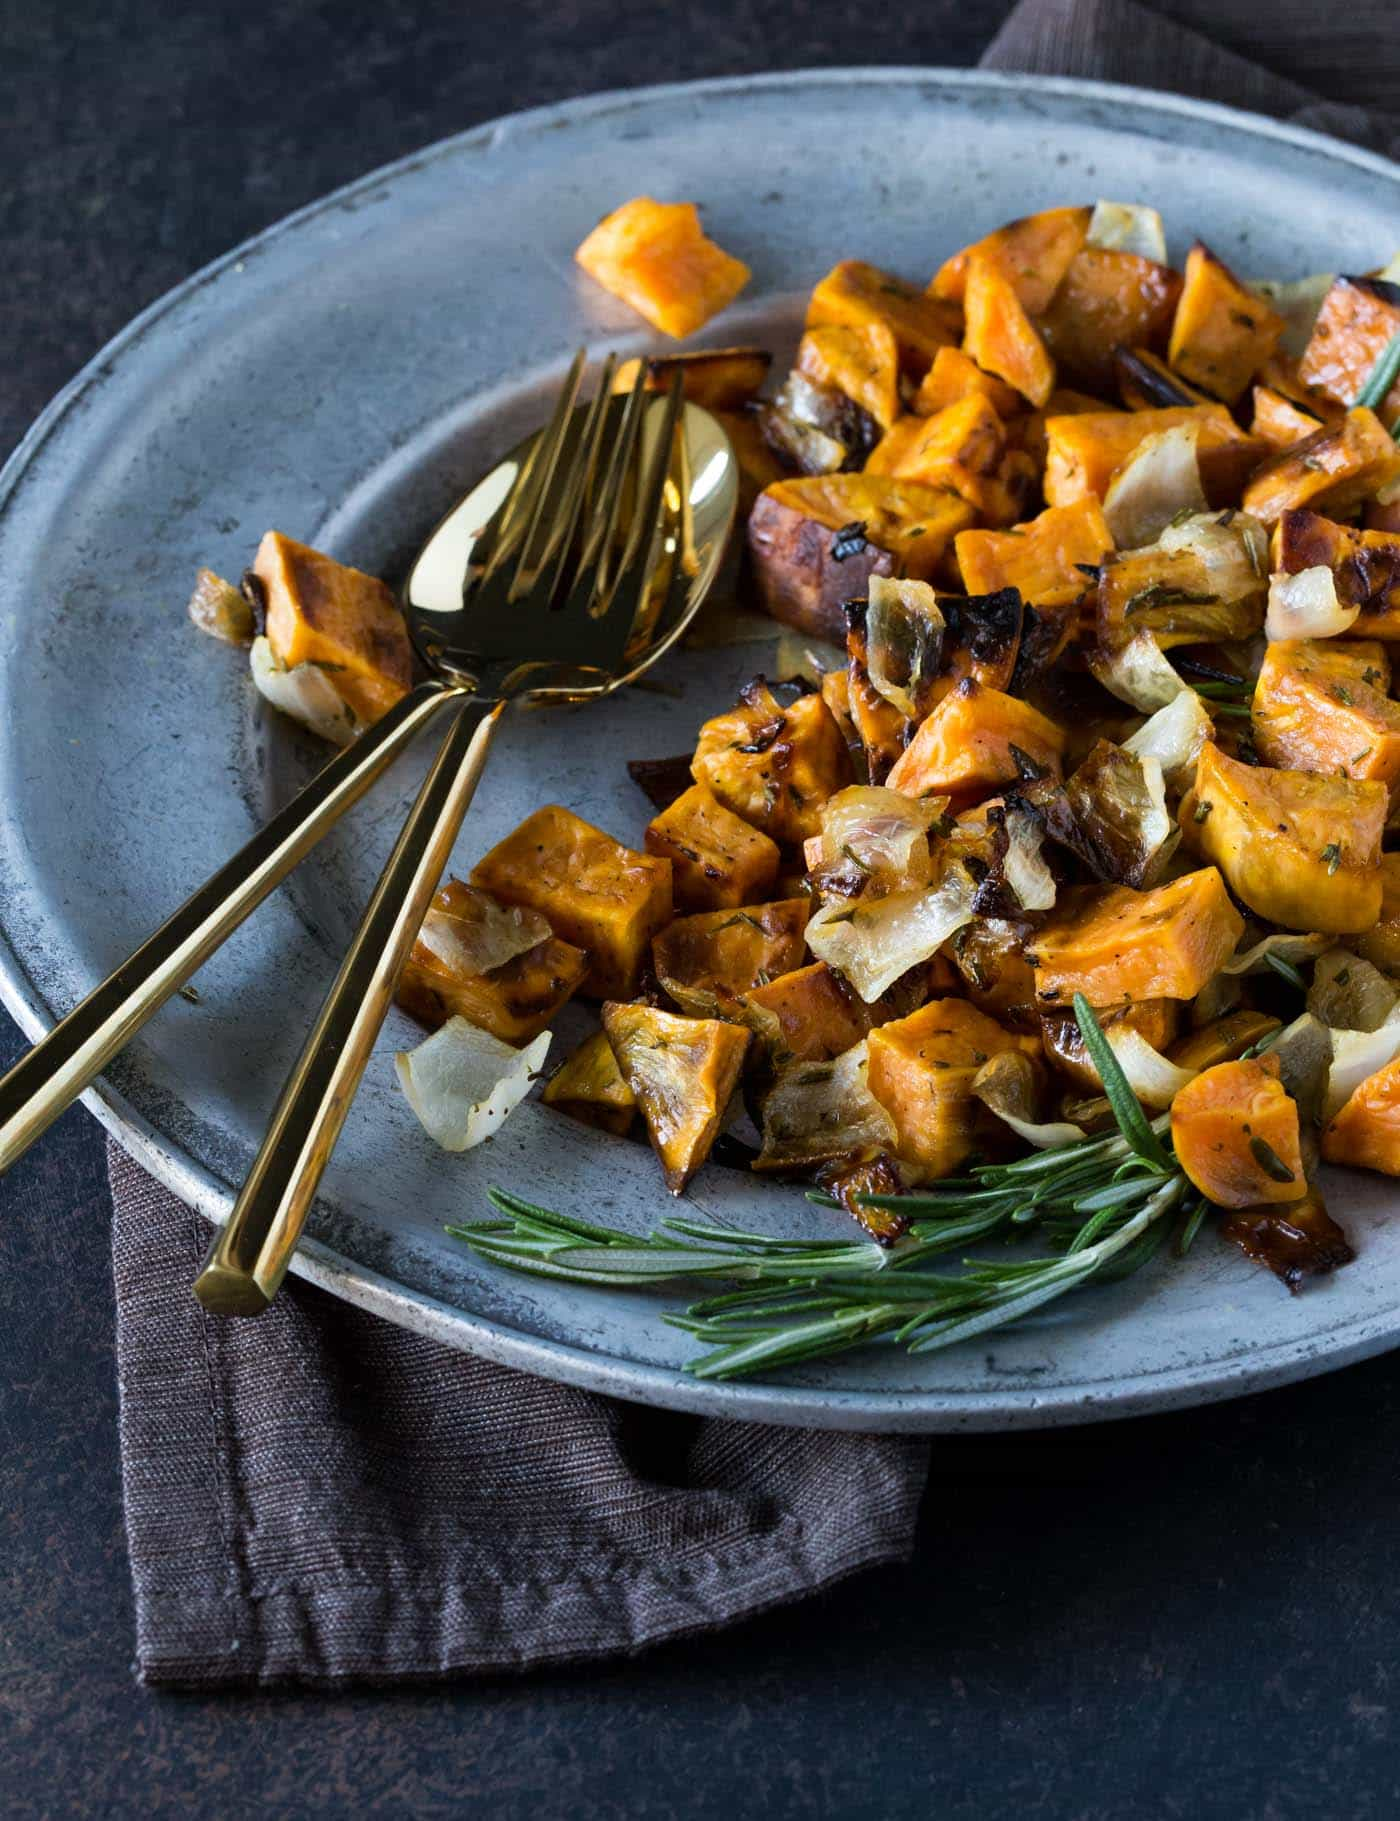 Roasted sweet potatoes  - Recipe by: Garnish by LemonUse these as a base for the egg hashes or as a side for the pork